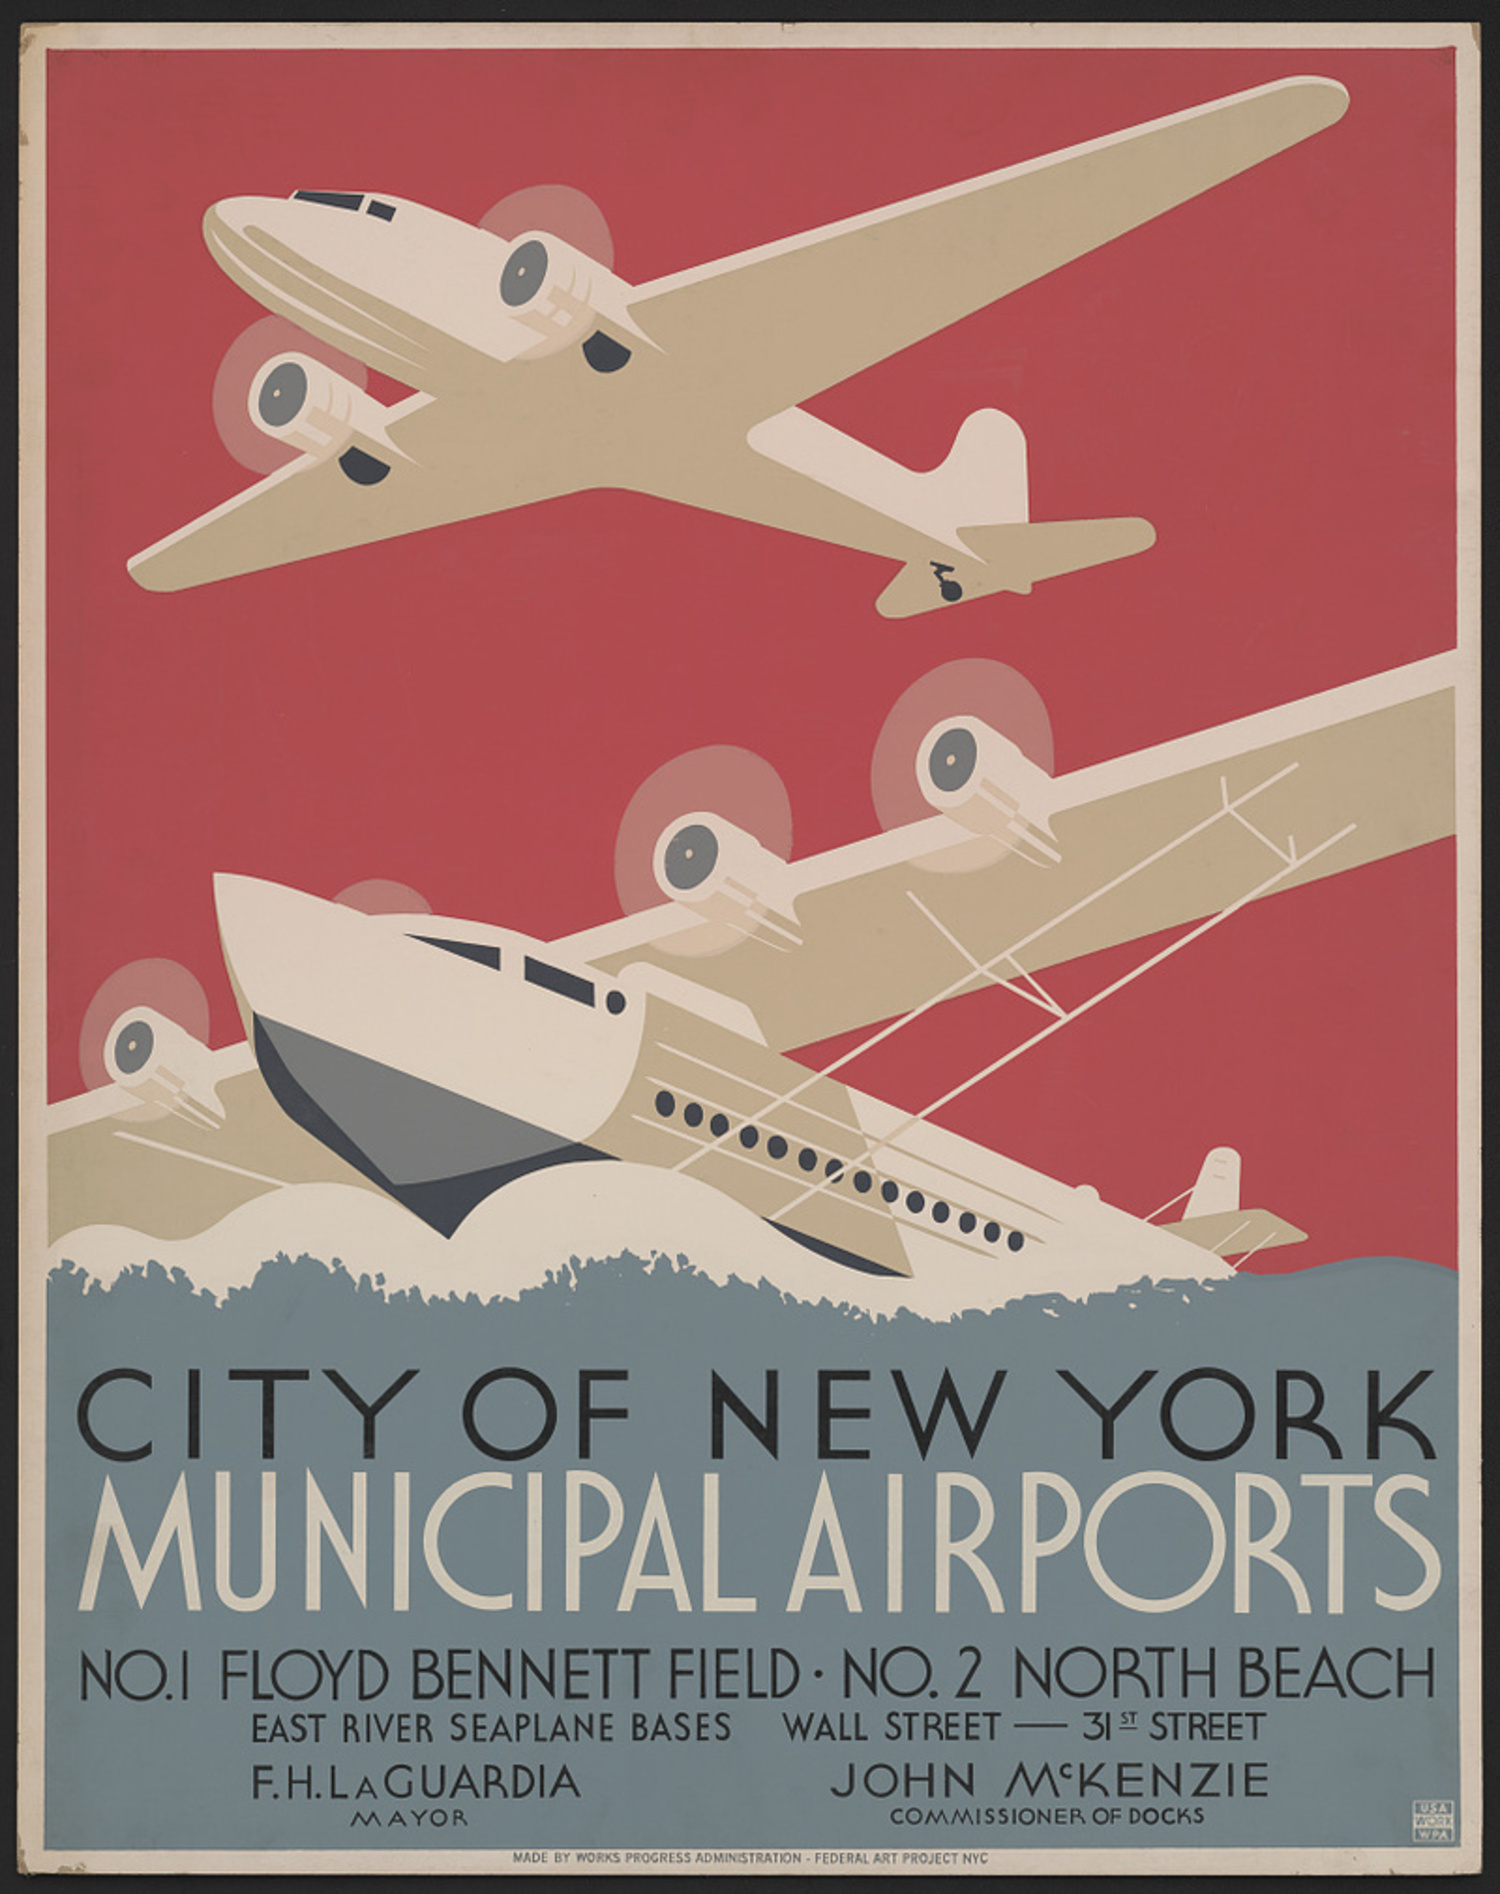 A 1930s-era poster for Floyd Bennett Field